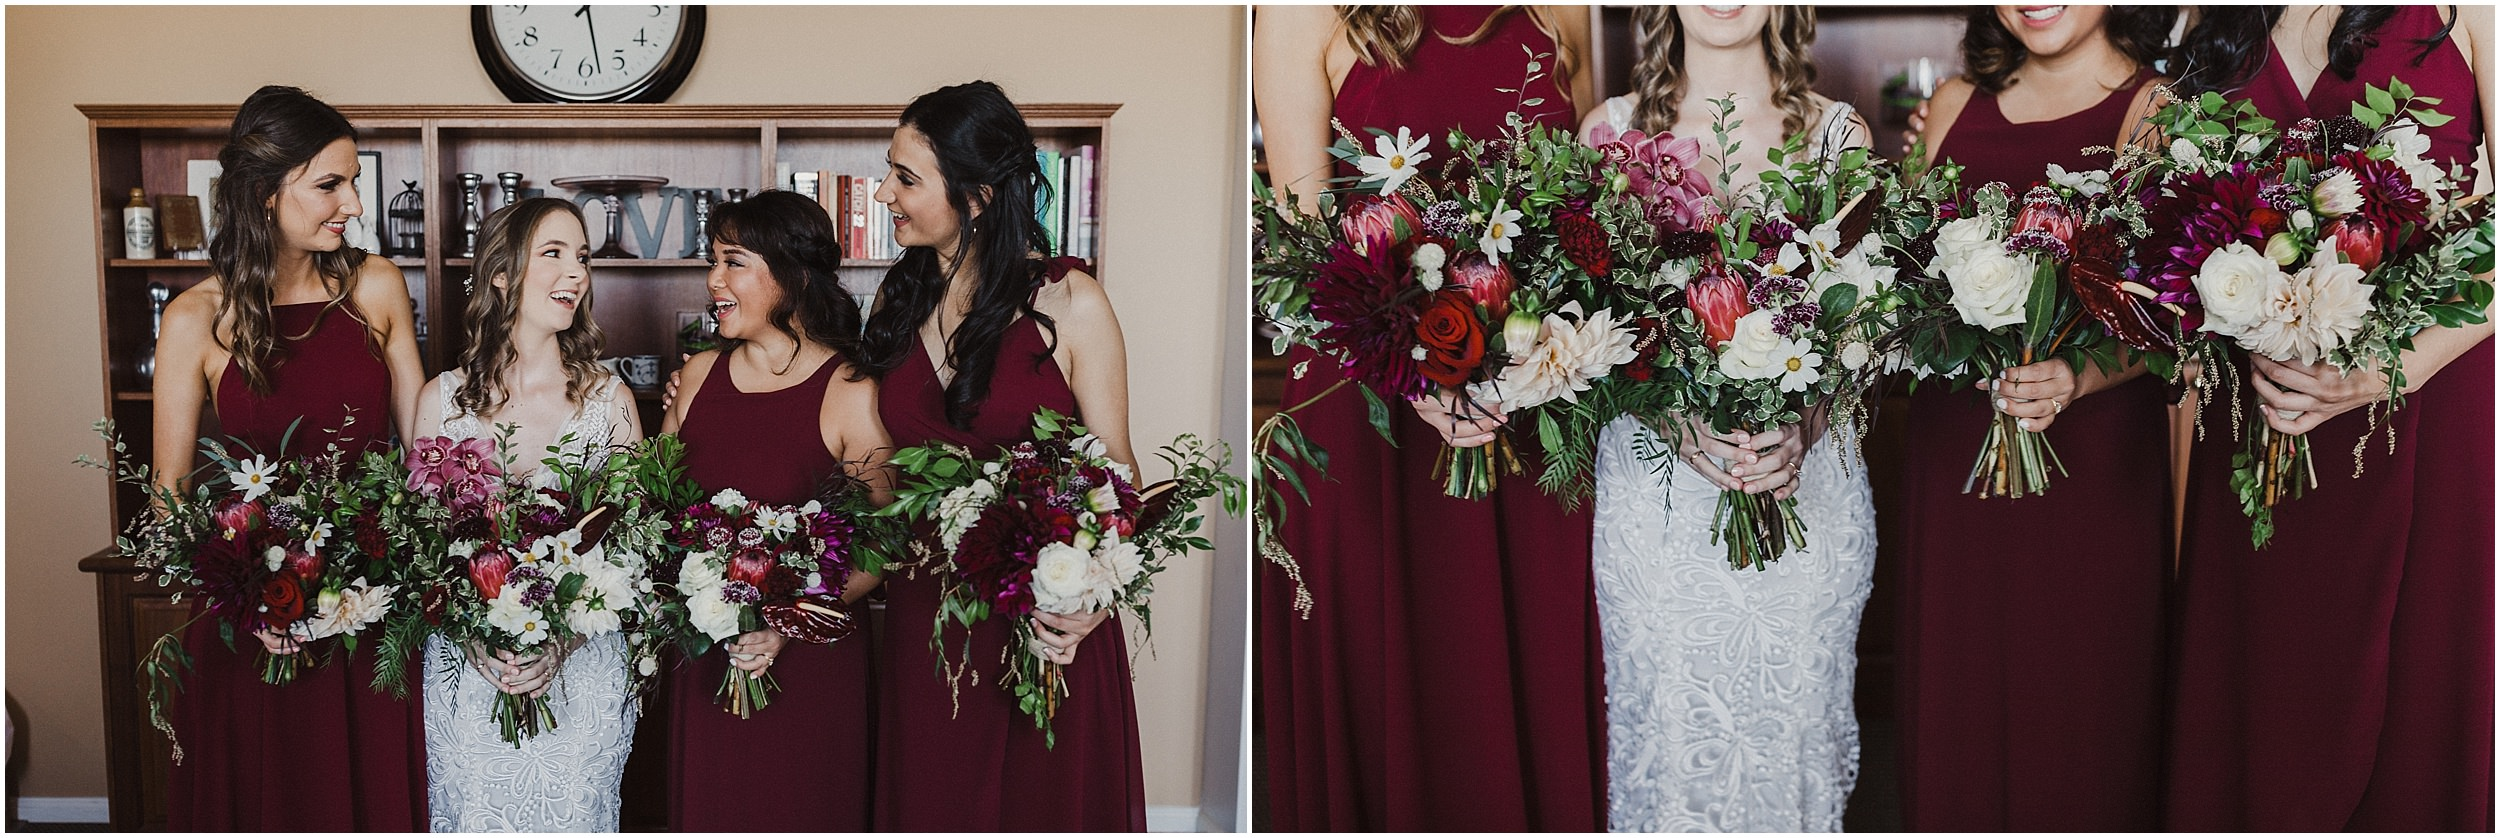 Sydney Wedding - Bride with Bridesmaids